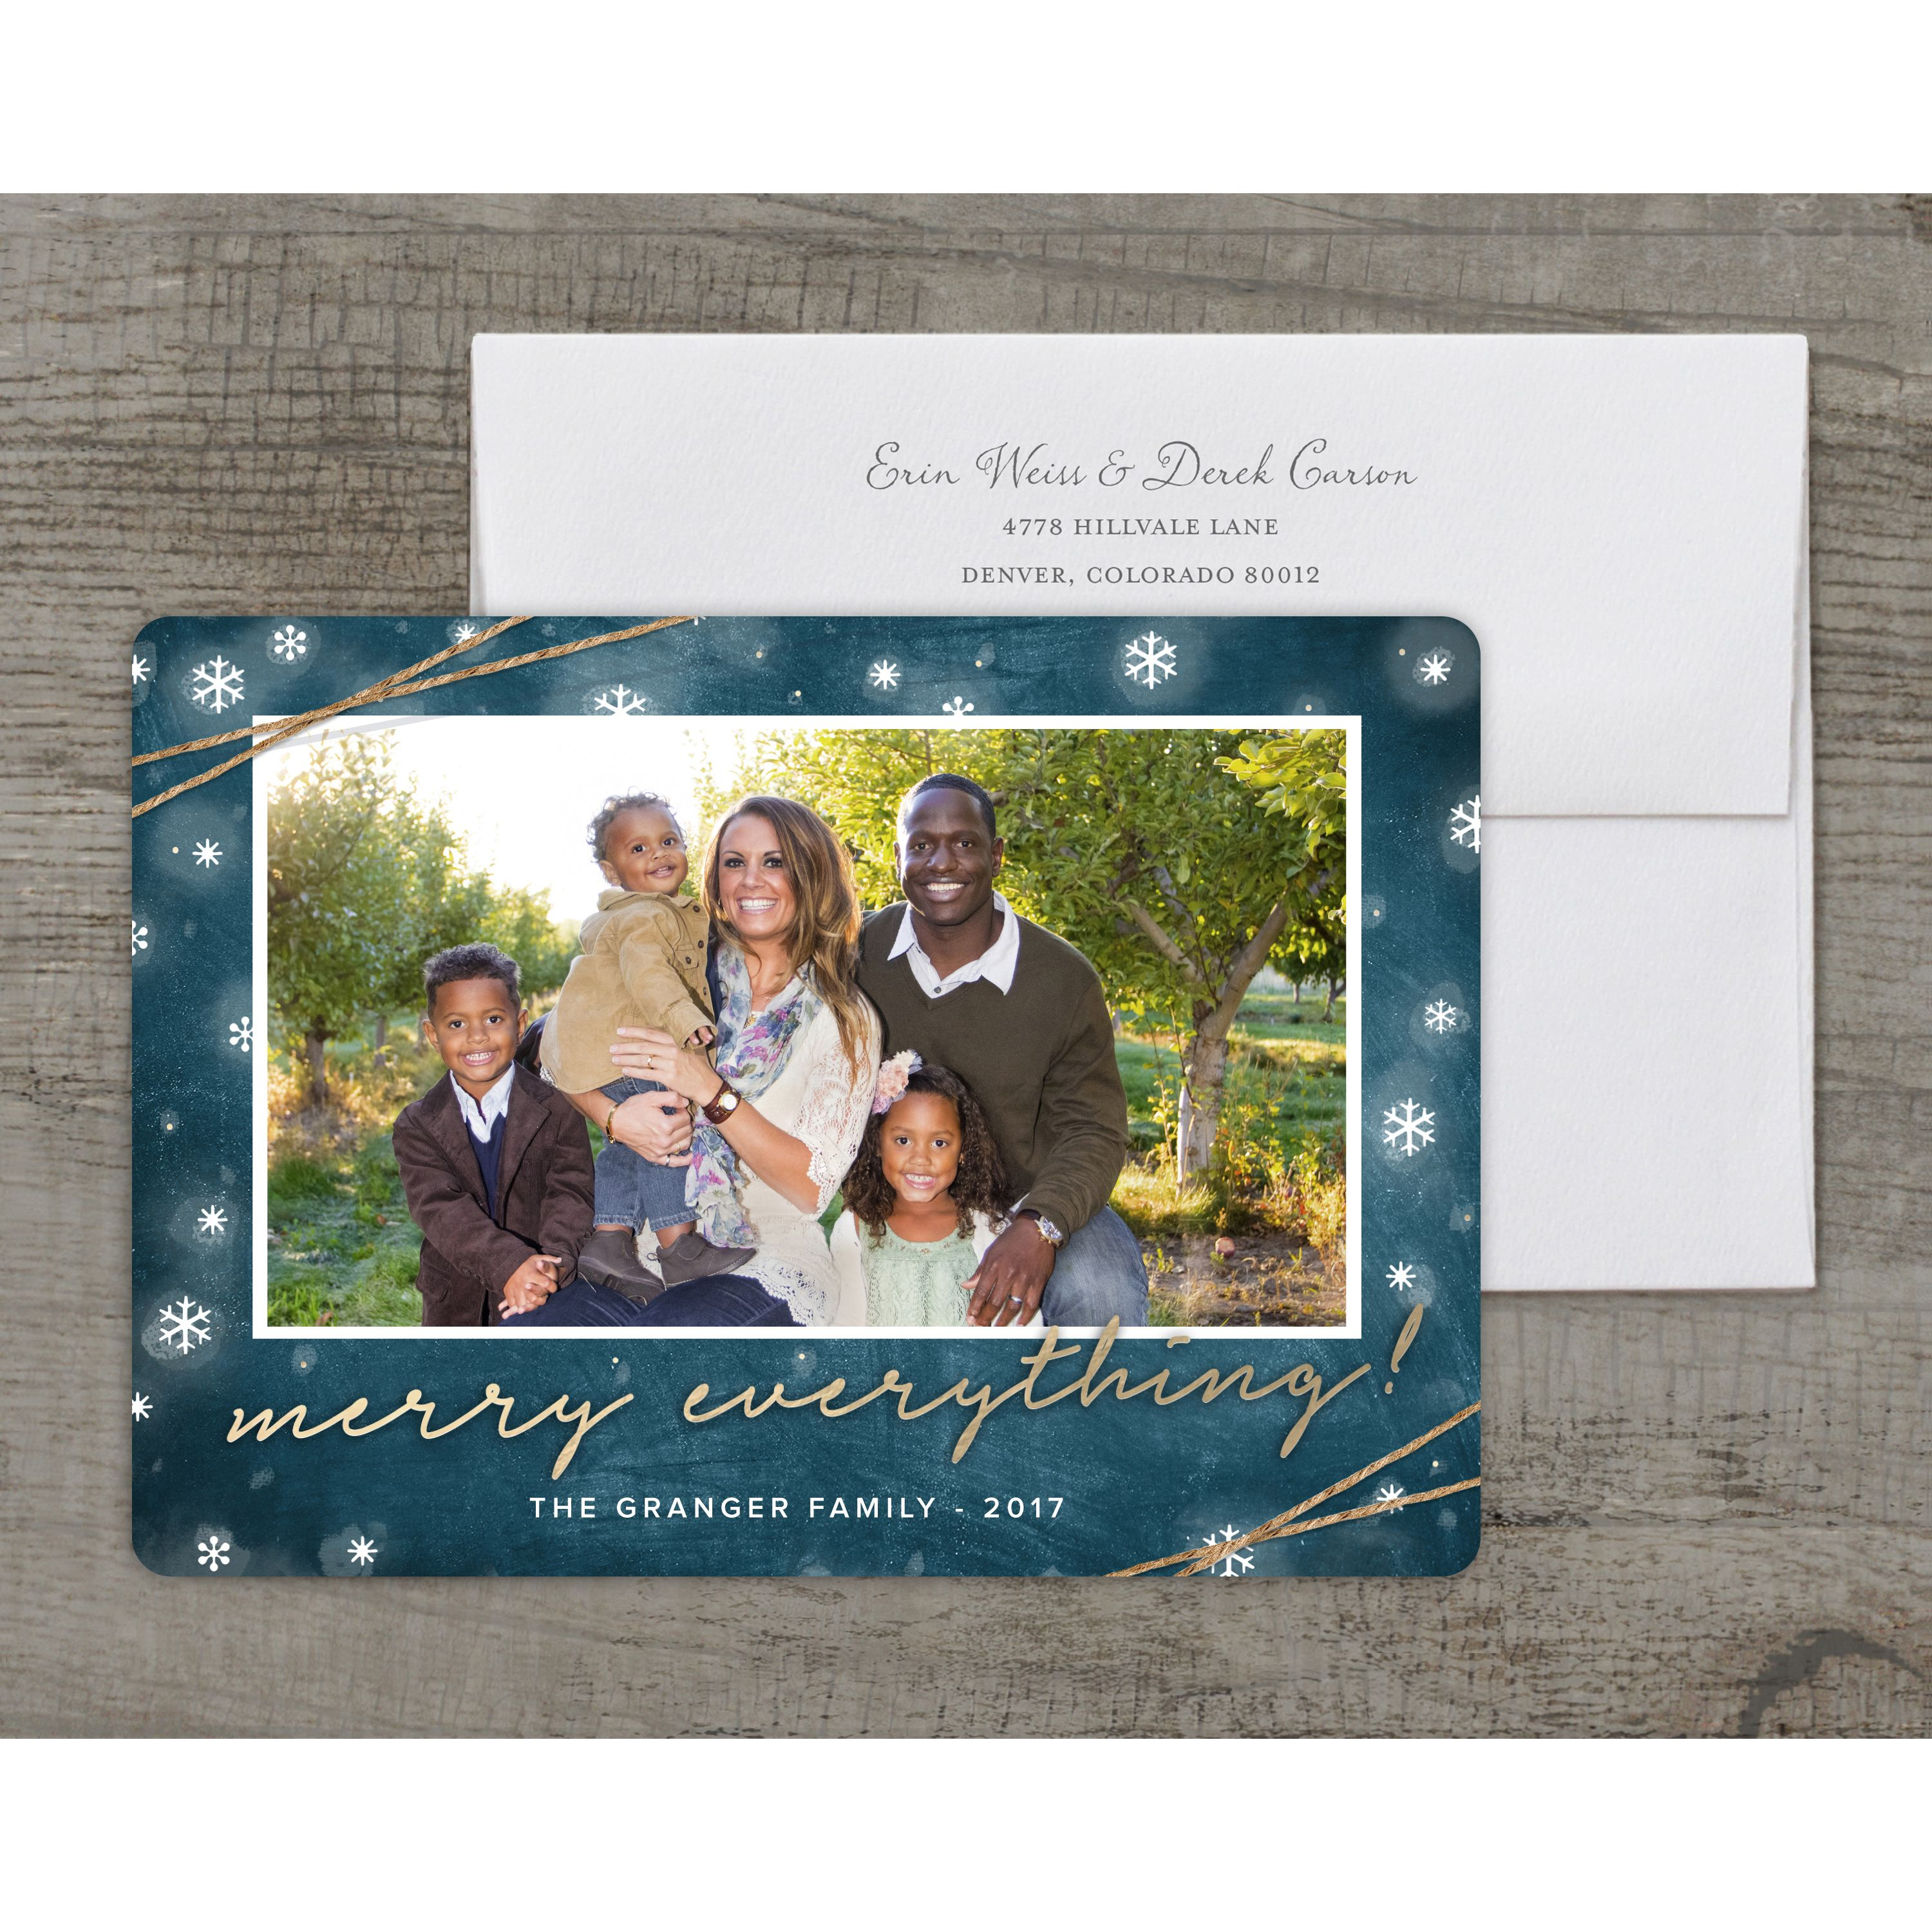 Rustic Merry Everything - Deluxe 5x7 Personalized Holiday Christmas Card